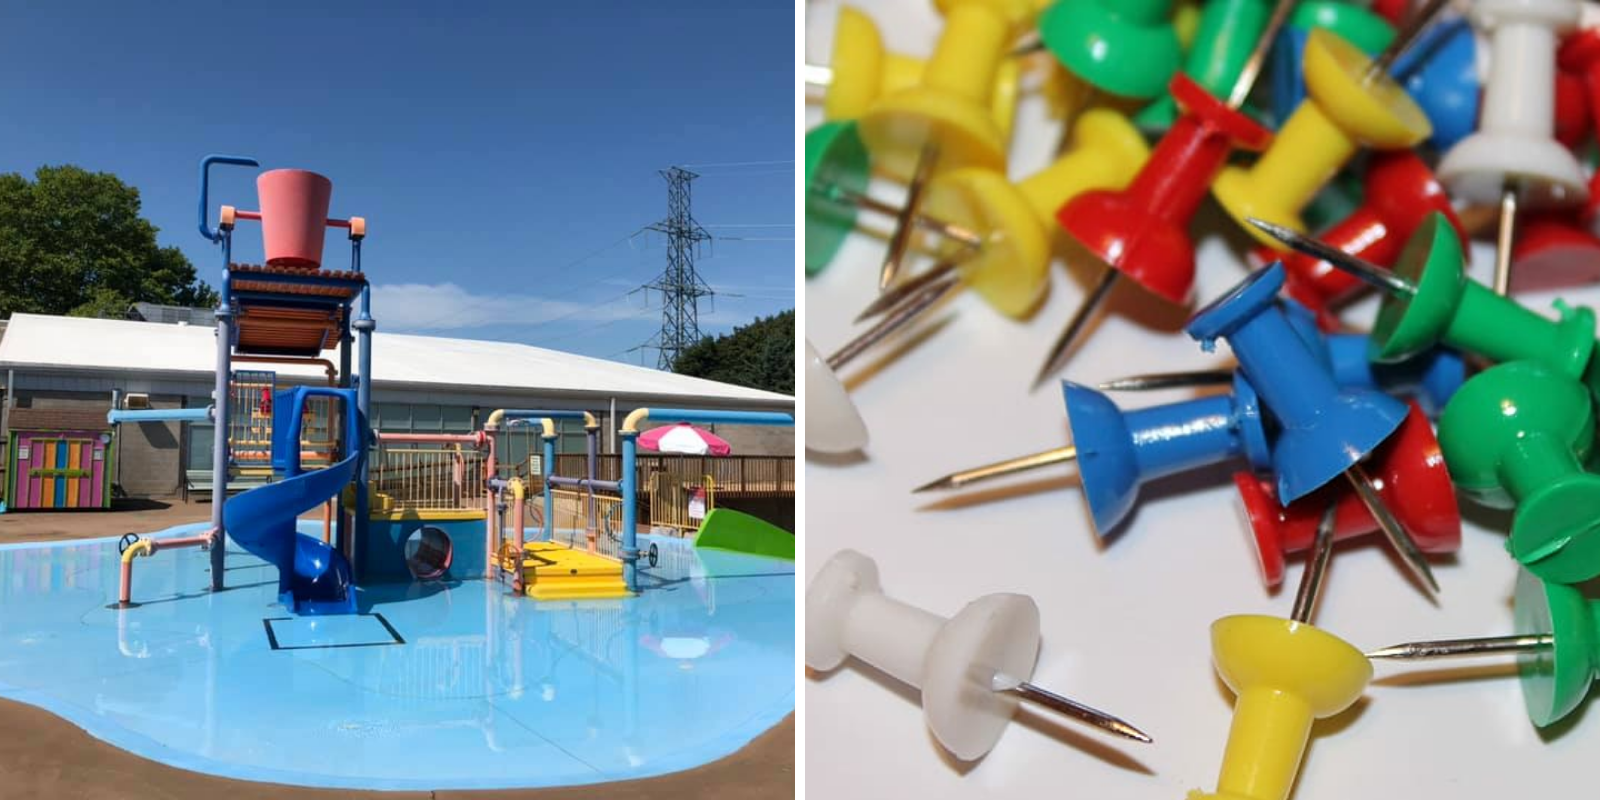 Ontario water park closed after sewing needles, thumbtacks found on equipment